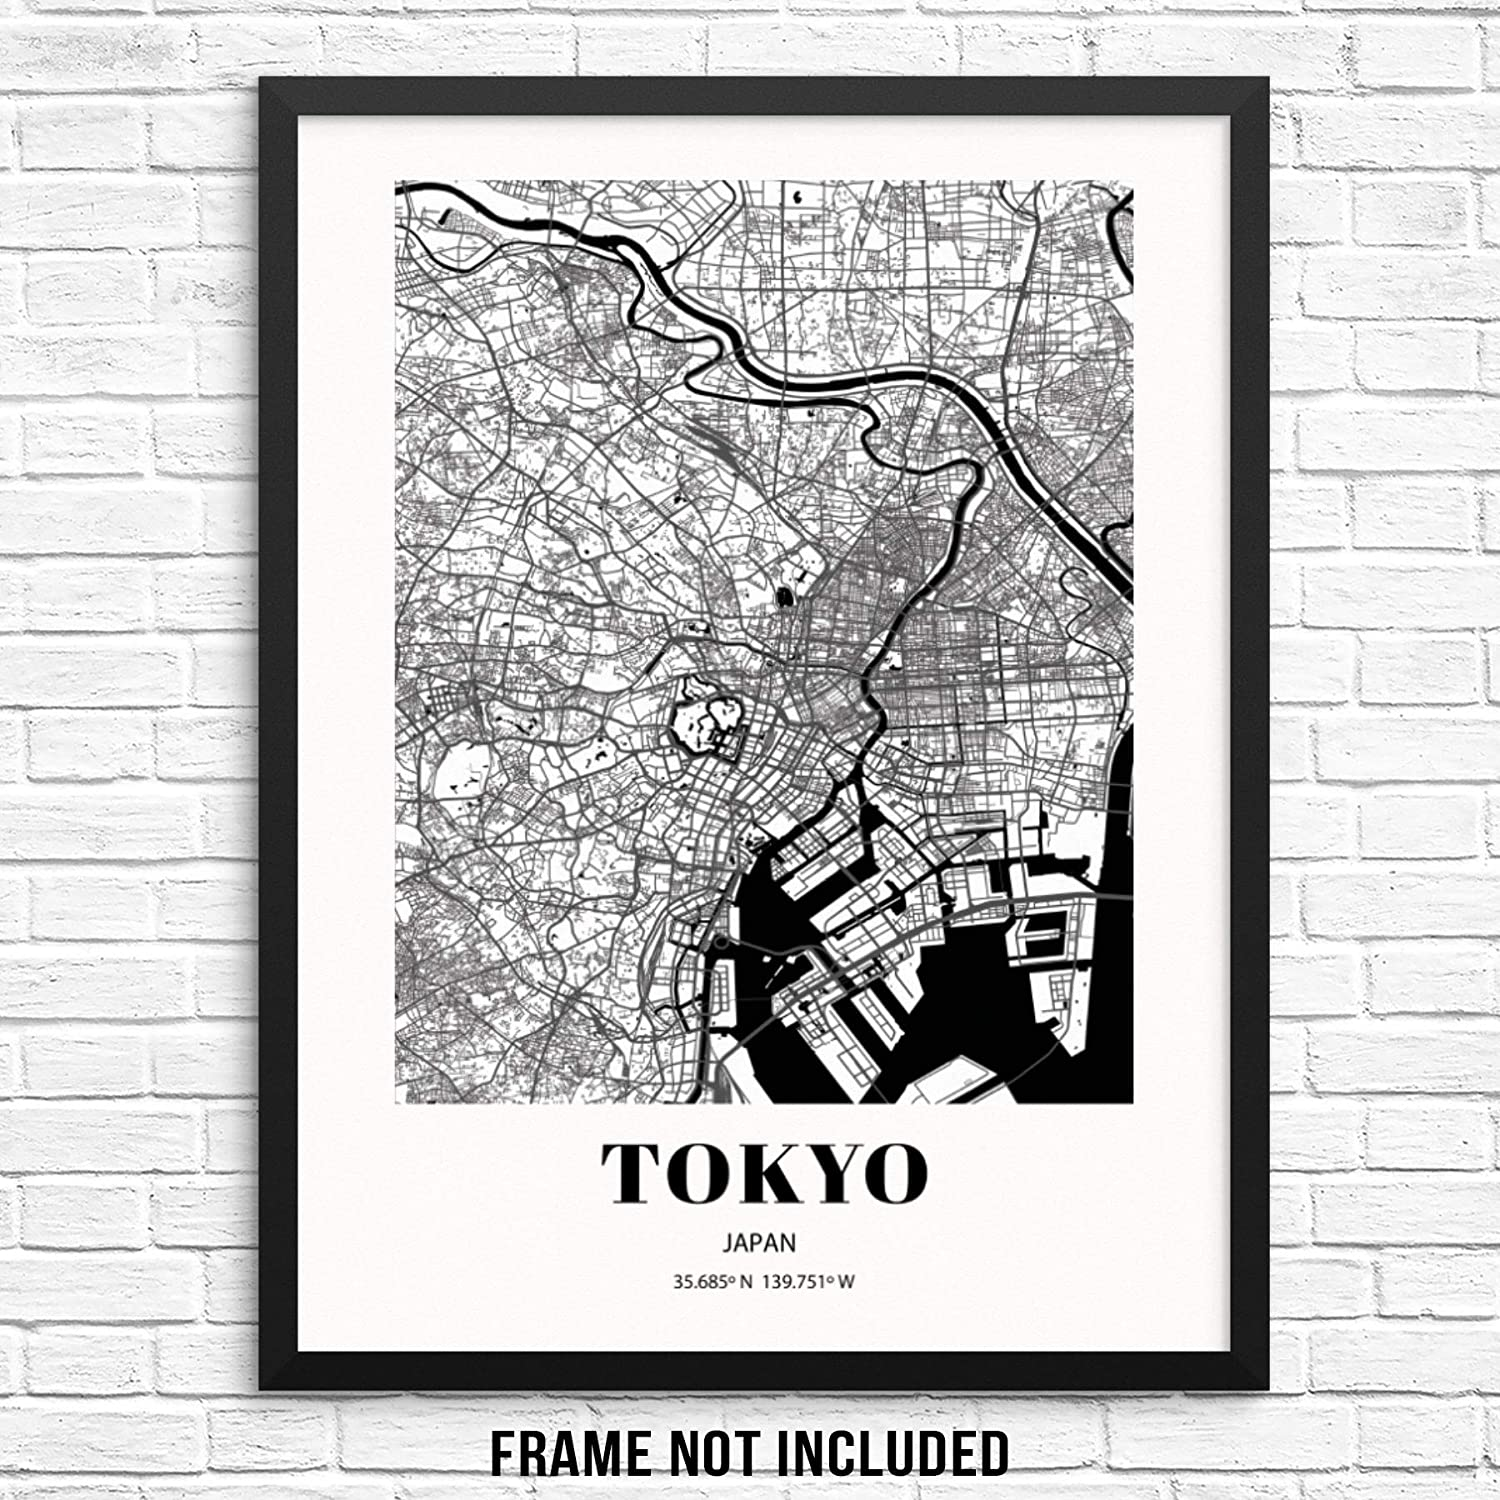 """Tokyo City Grid Map Art Print Japan Cityscape Road Map Wall Poster 11""""x14"""" UNFRAMED Black White Modern Urban Home Decor Artwork for Living Room, Bedroom, Entryway, Home Office or Gift (TOKYO)"""